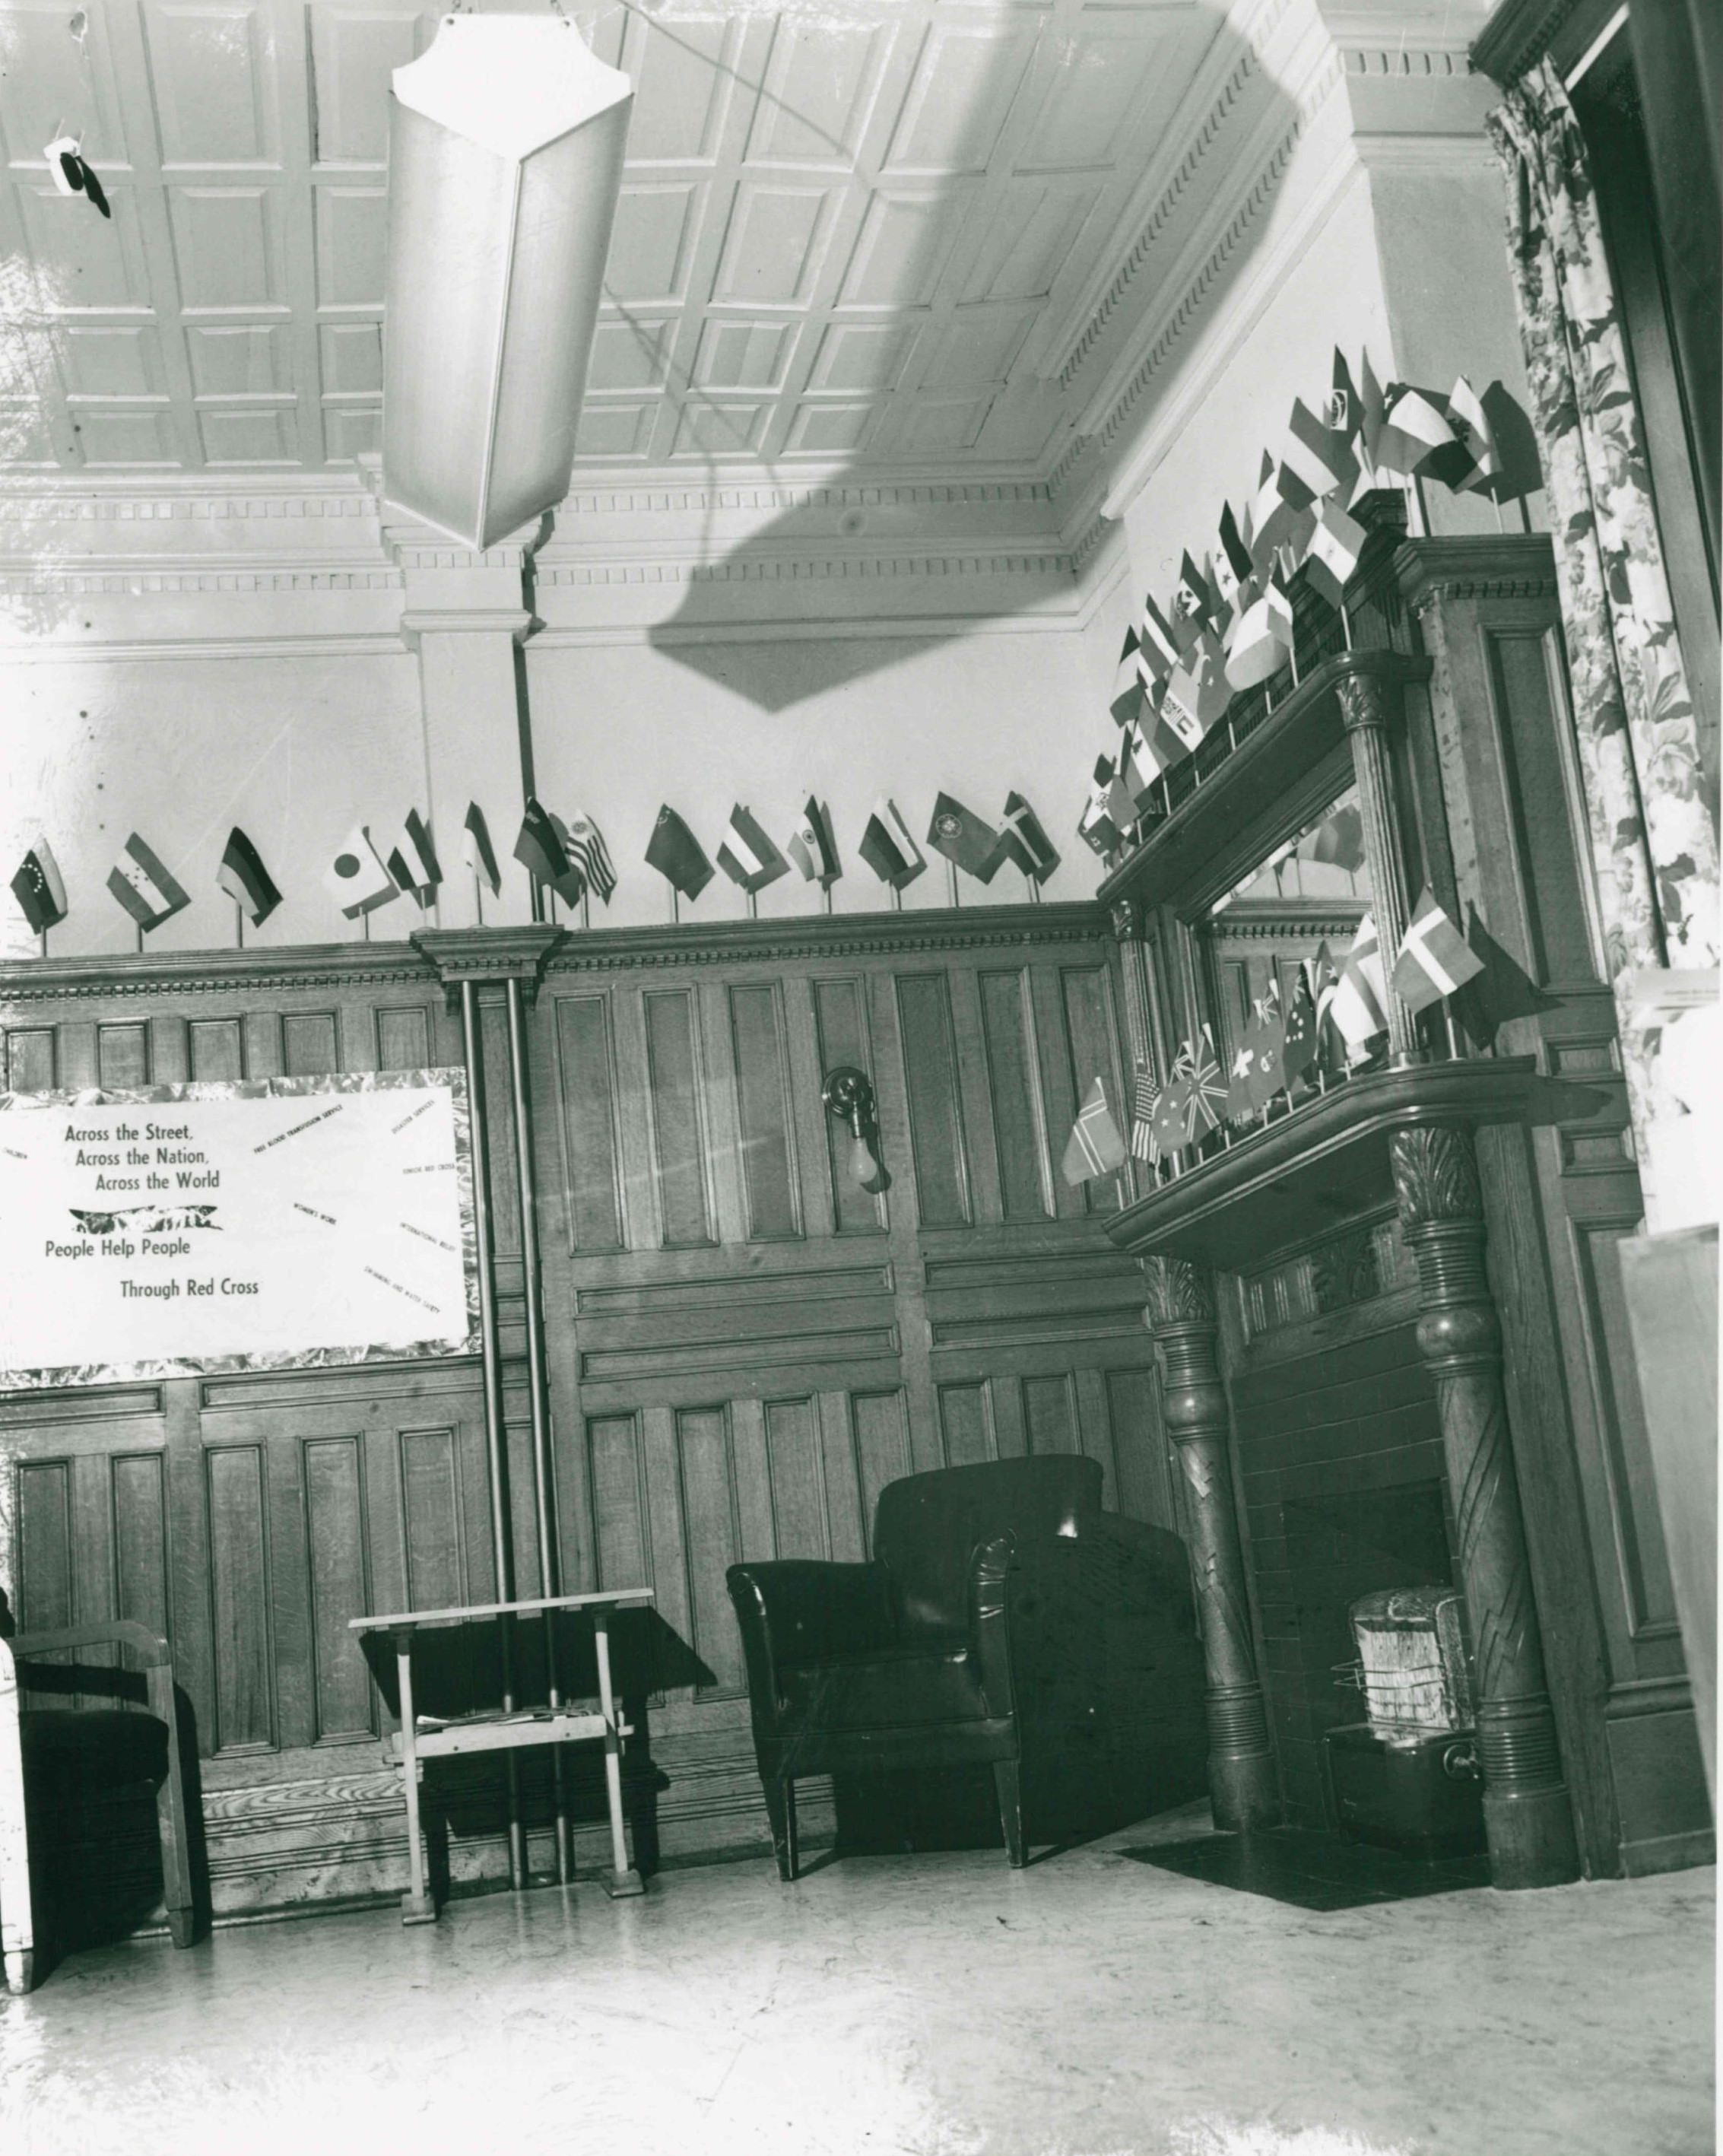 Image 5, Senator's Study during the Red Cross era, c. 1950s